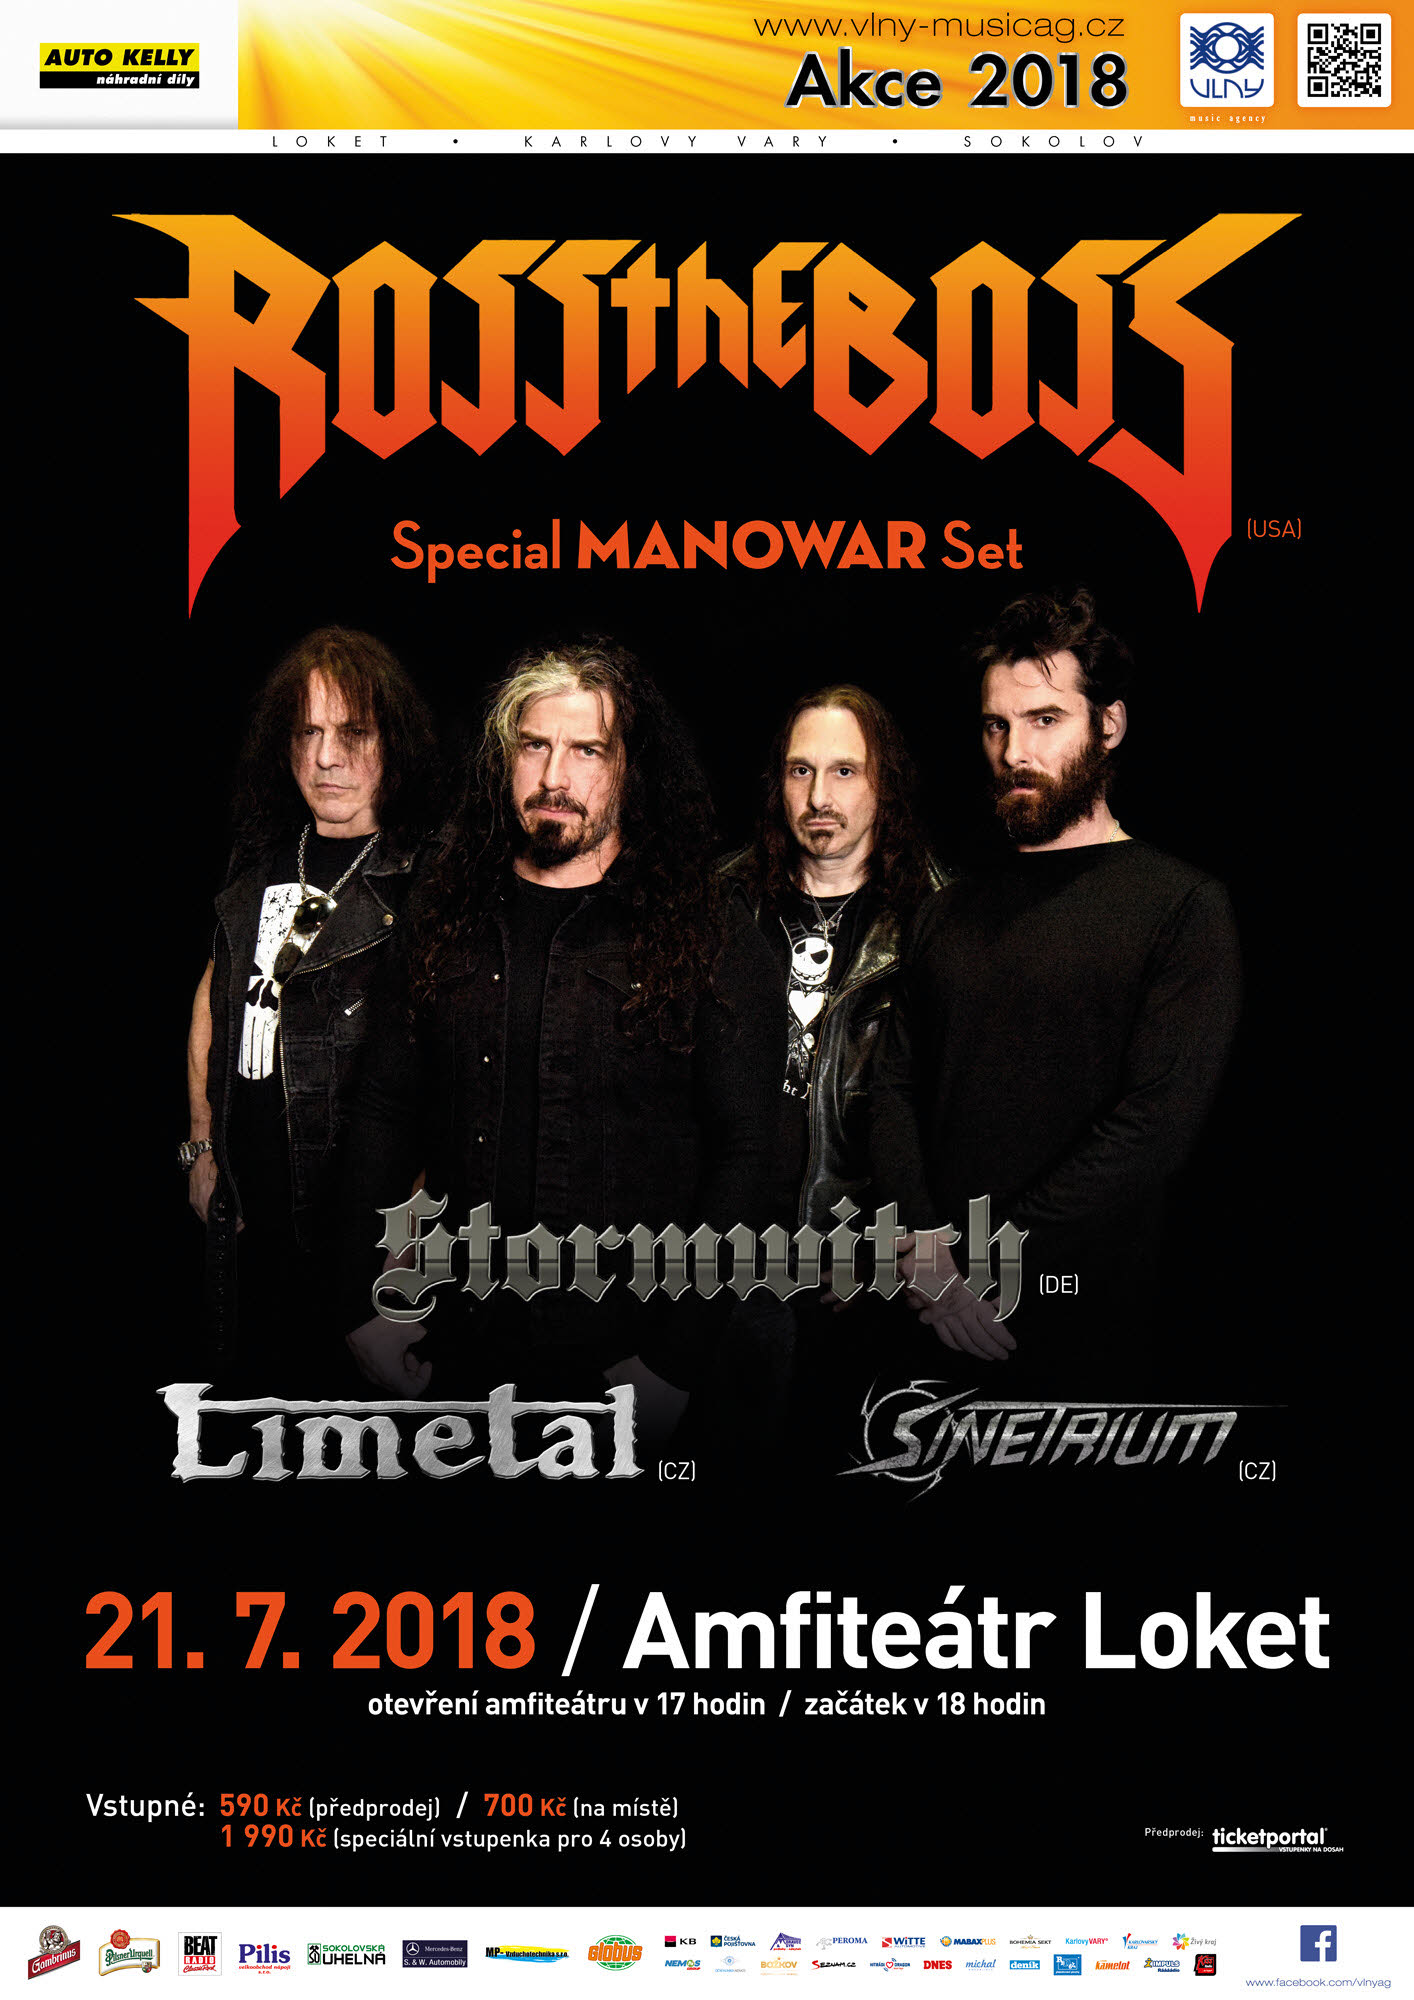 picture ROSS THE BOSS (USA)-STORMWITCH-LIMETAL-SINETRIUM